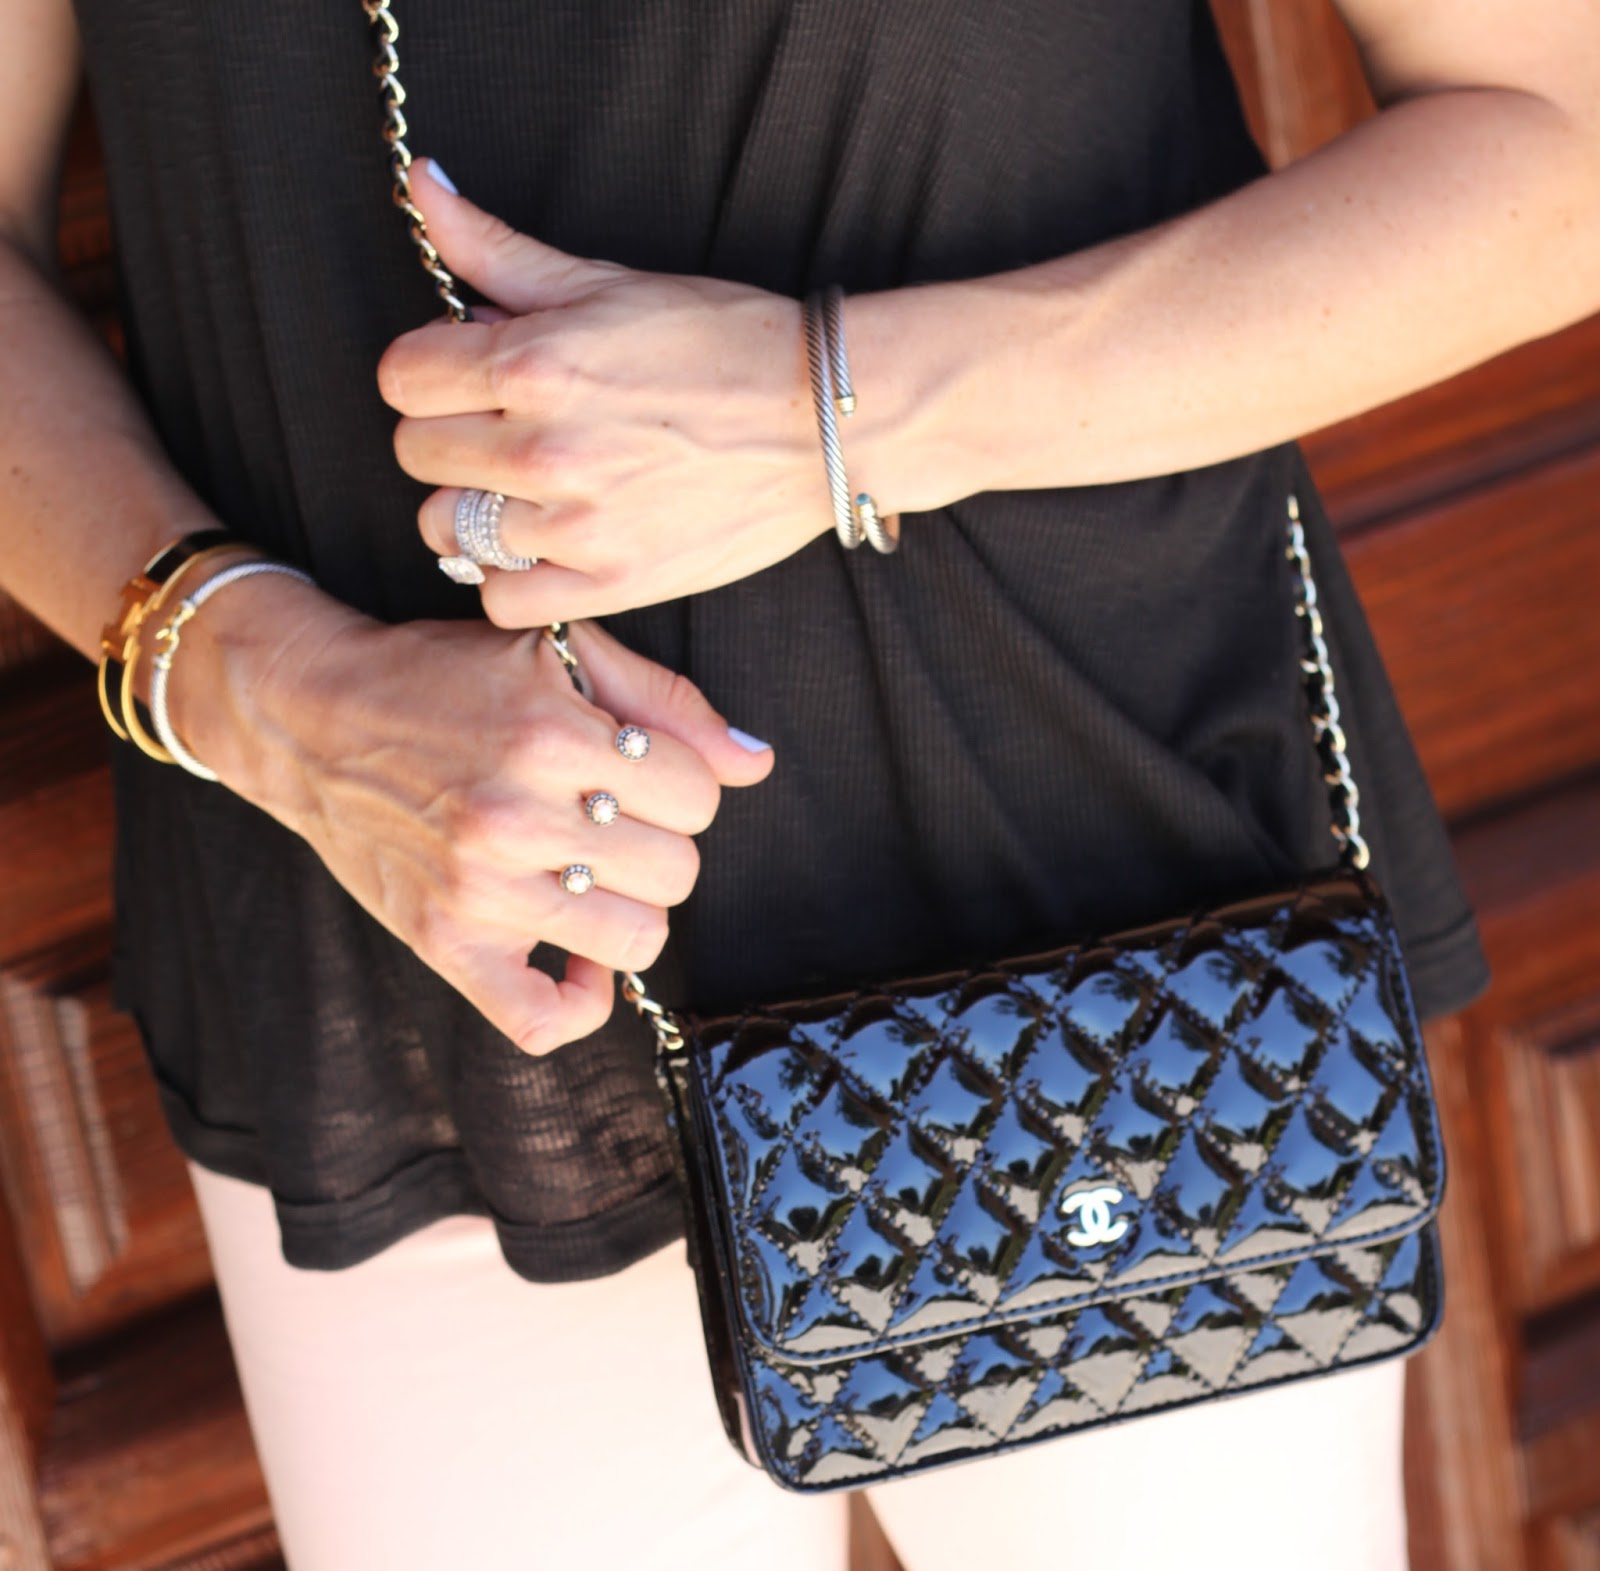 kendra scott double ring black chanel crossbody